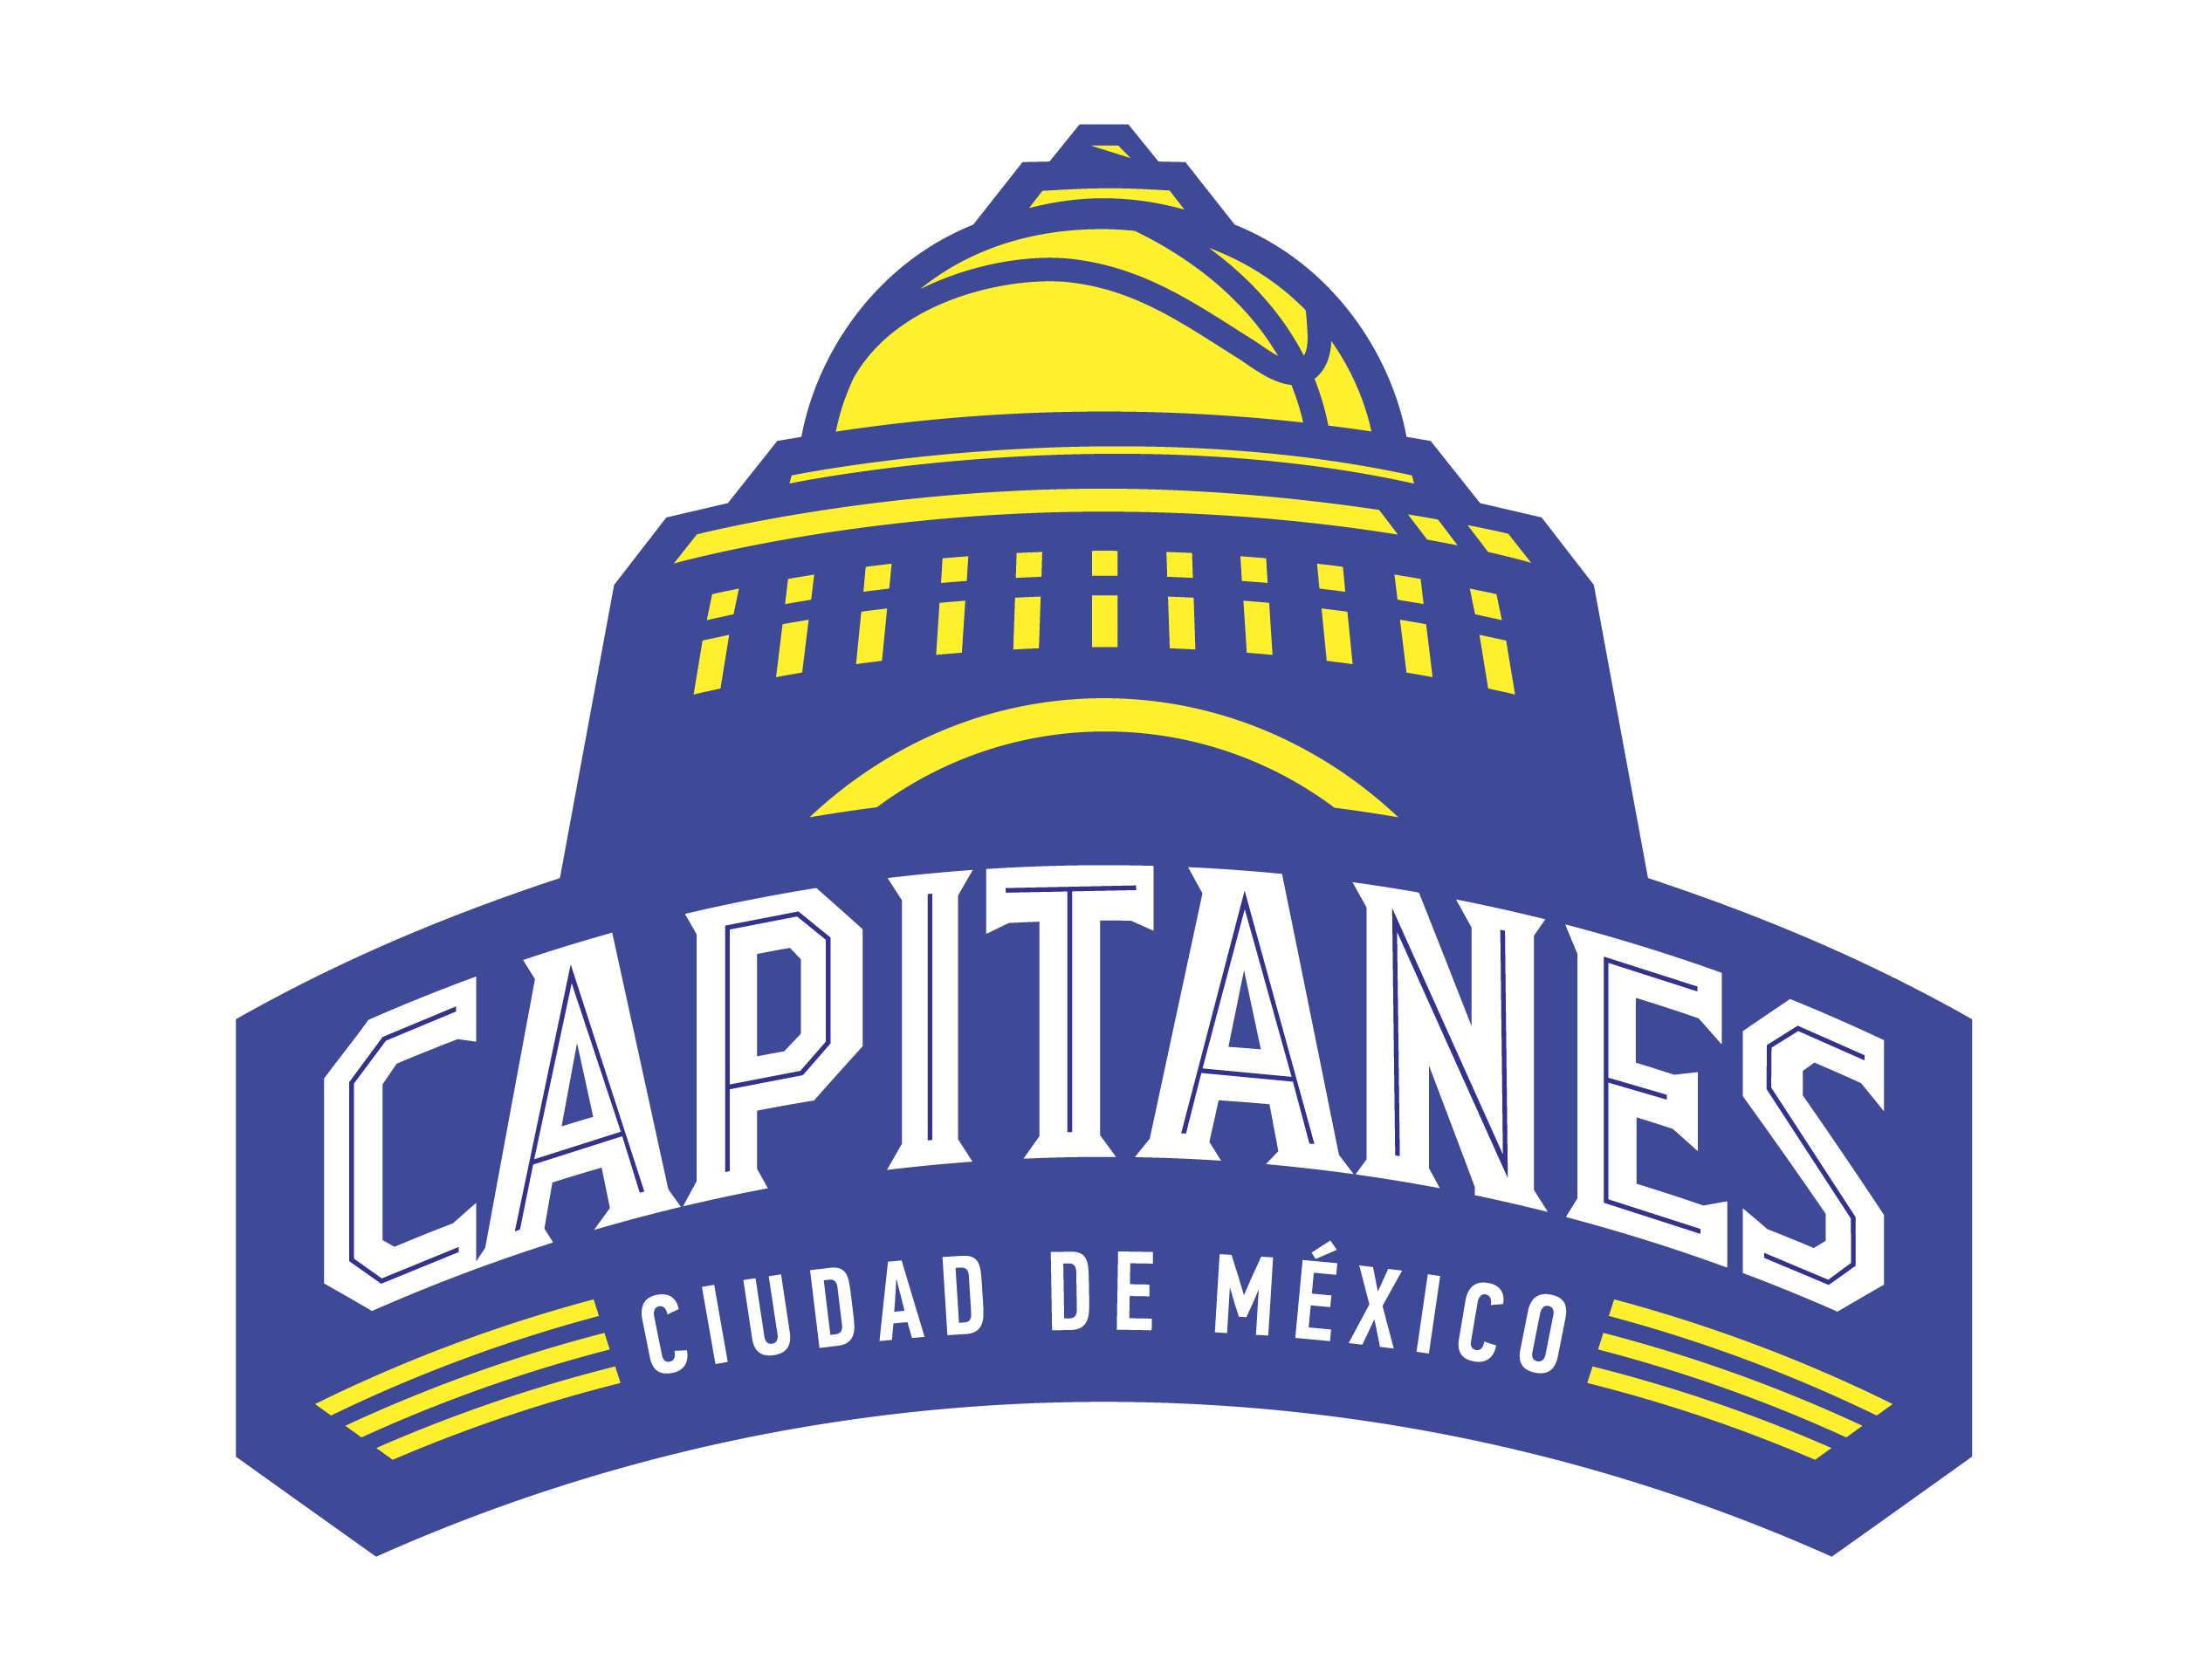 File:CapitanesCDMX.png.